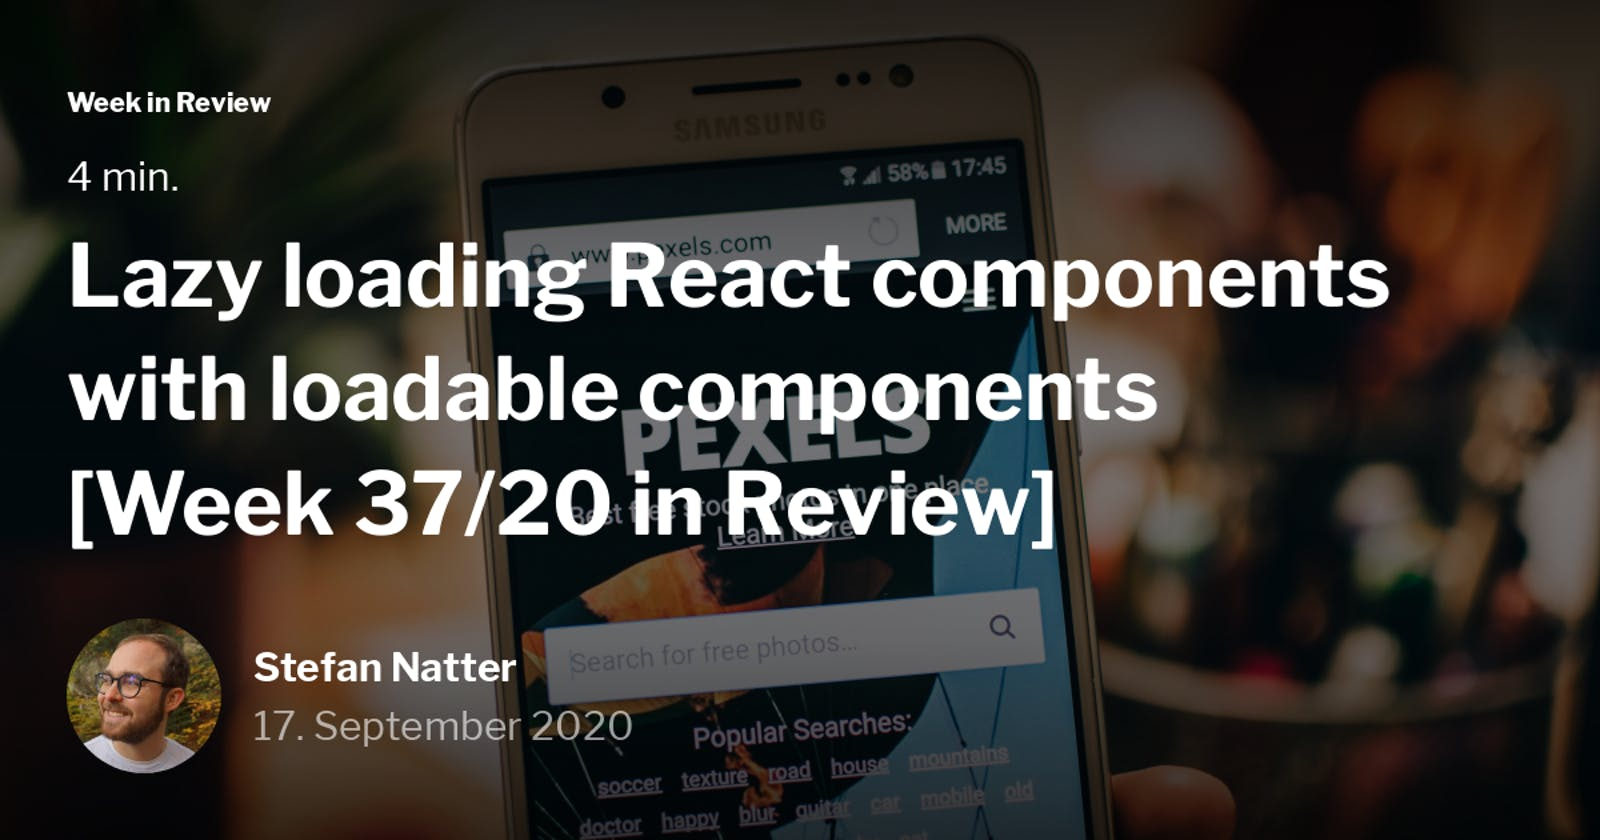 Lazy loading React components with loadable components [Week 37/20 in Review]